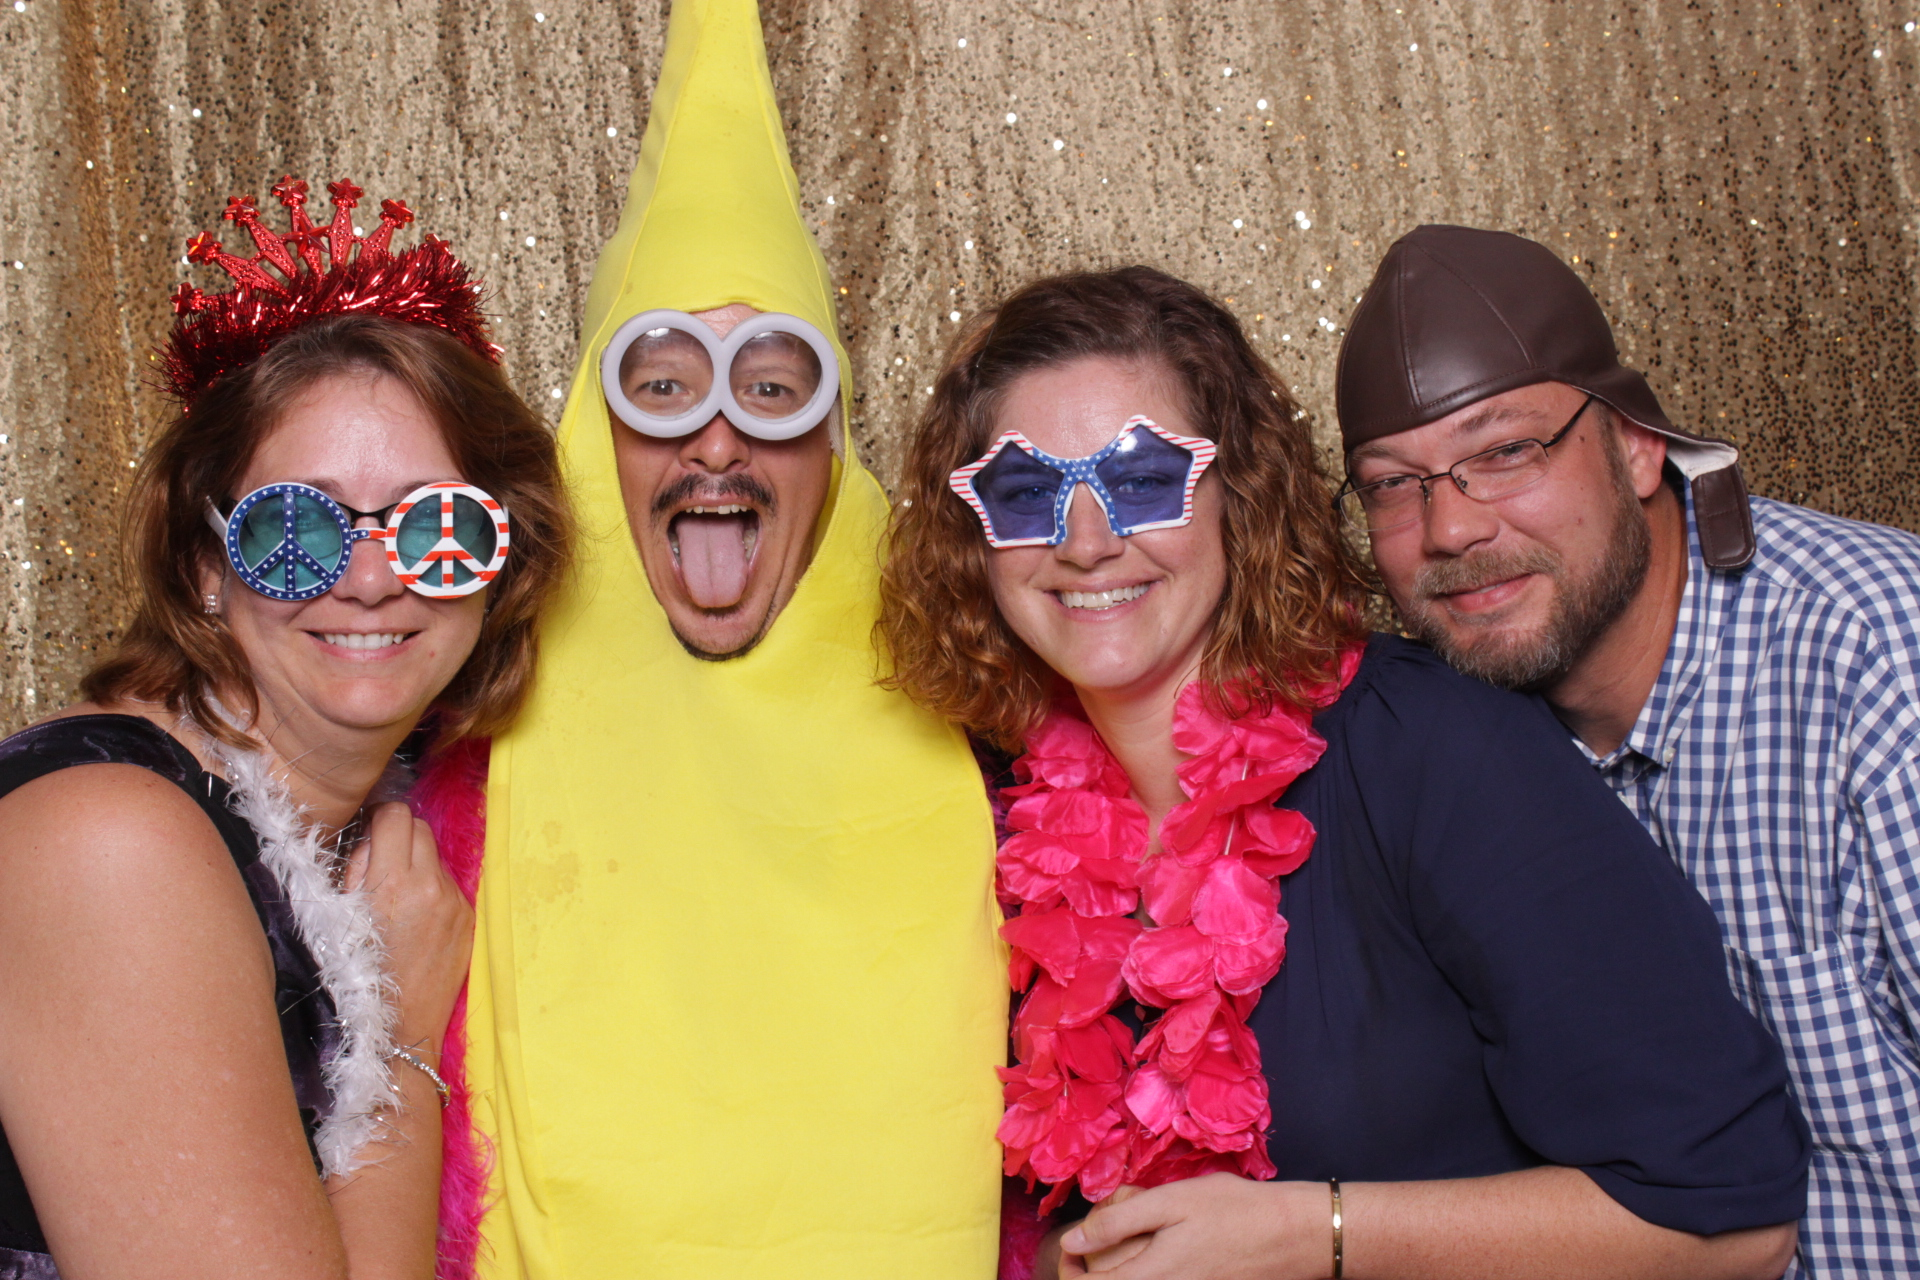 Maryland Wedding Photographer, Family, Newborn, Photo Booth, Harford County Photography